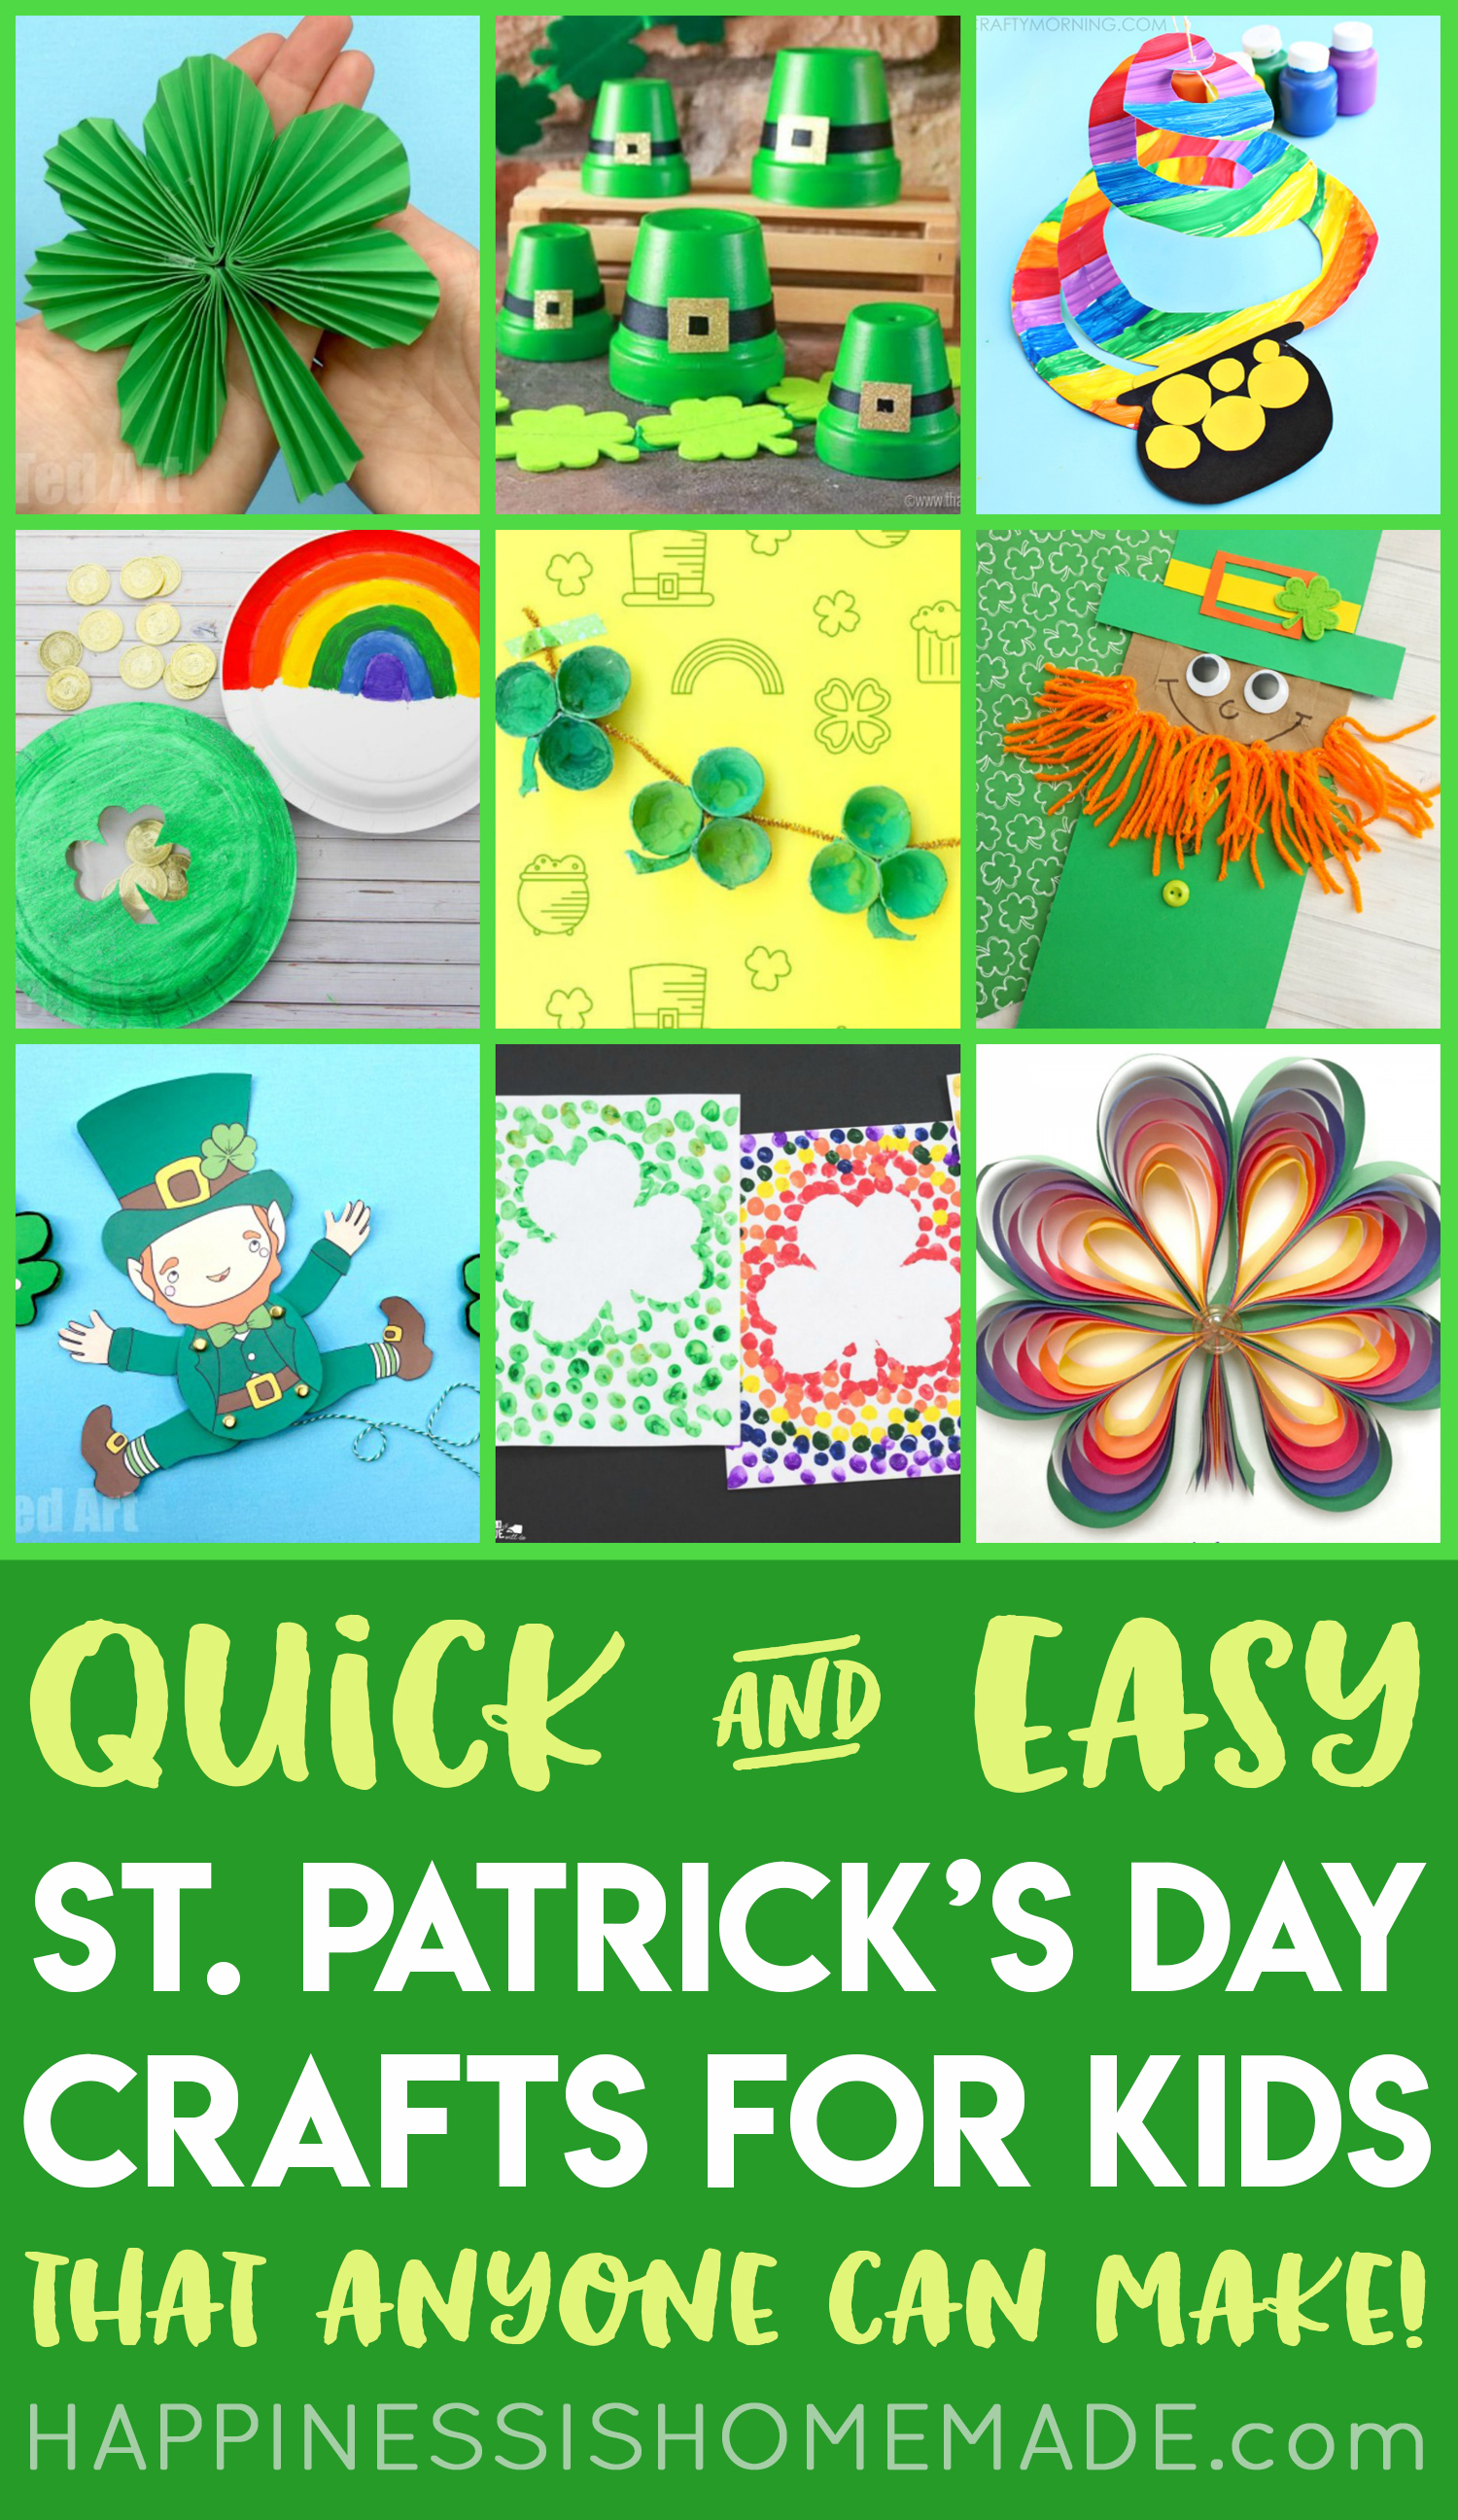 5db5b0472 Easy St. Patrick's Day Crafts for Kids - Happiness is Homemade